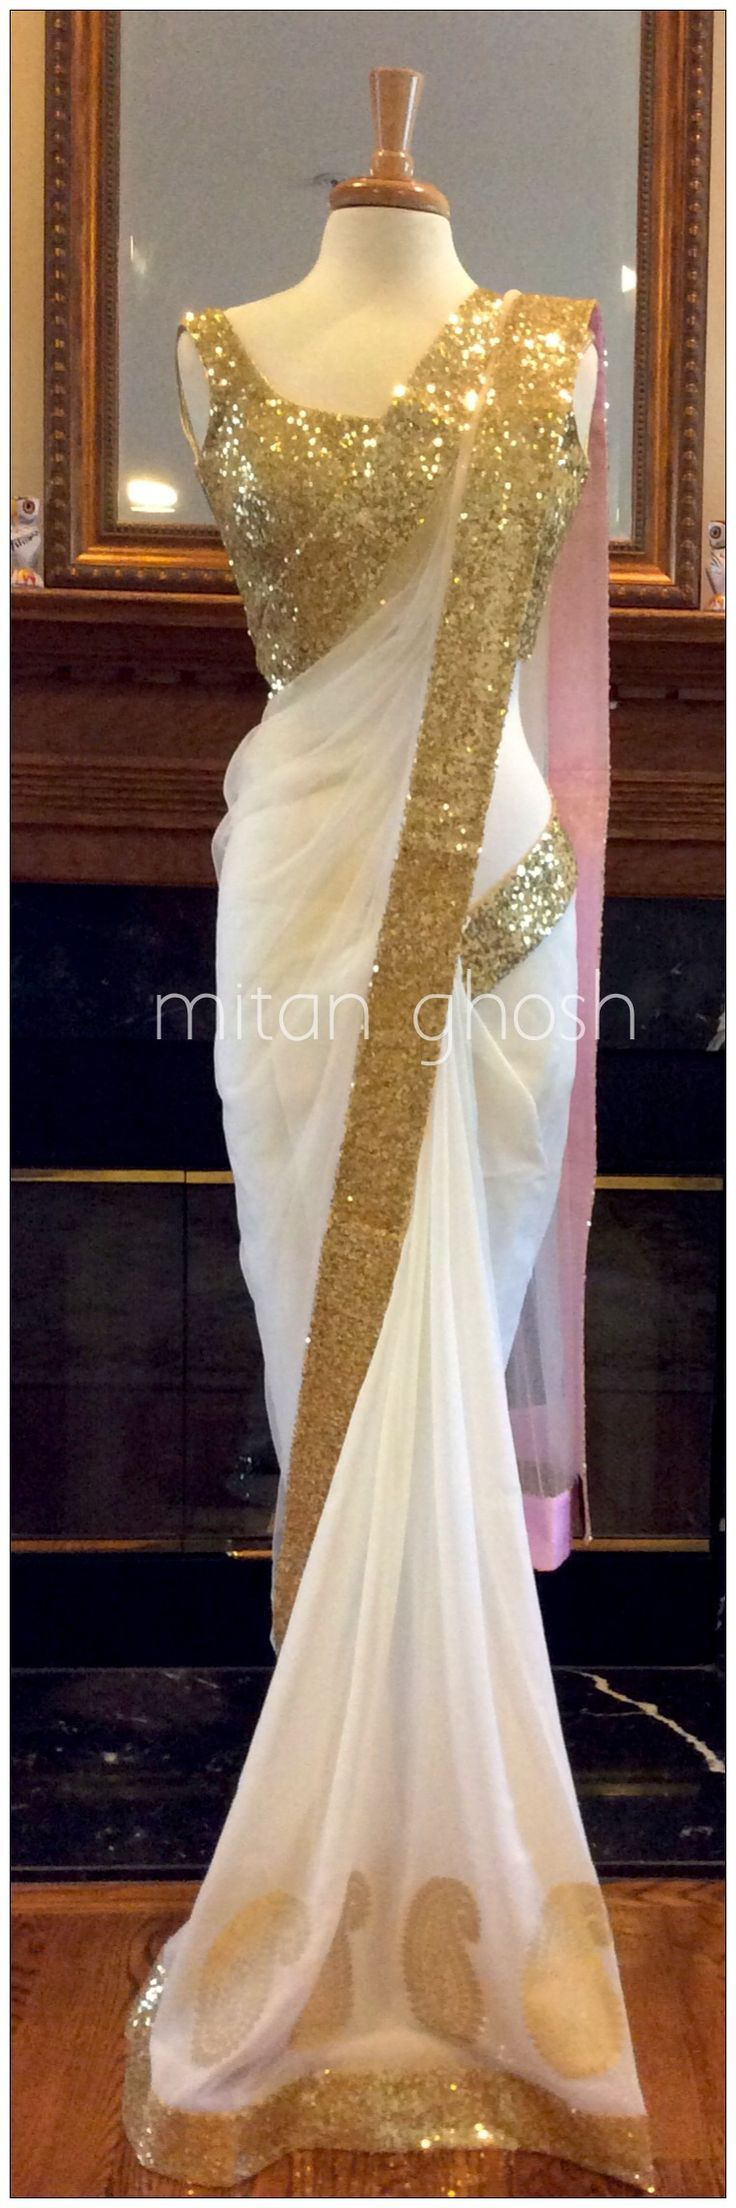 Sexy white golden sari